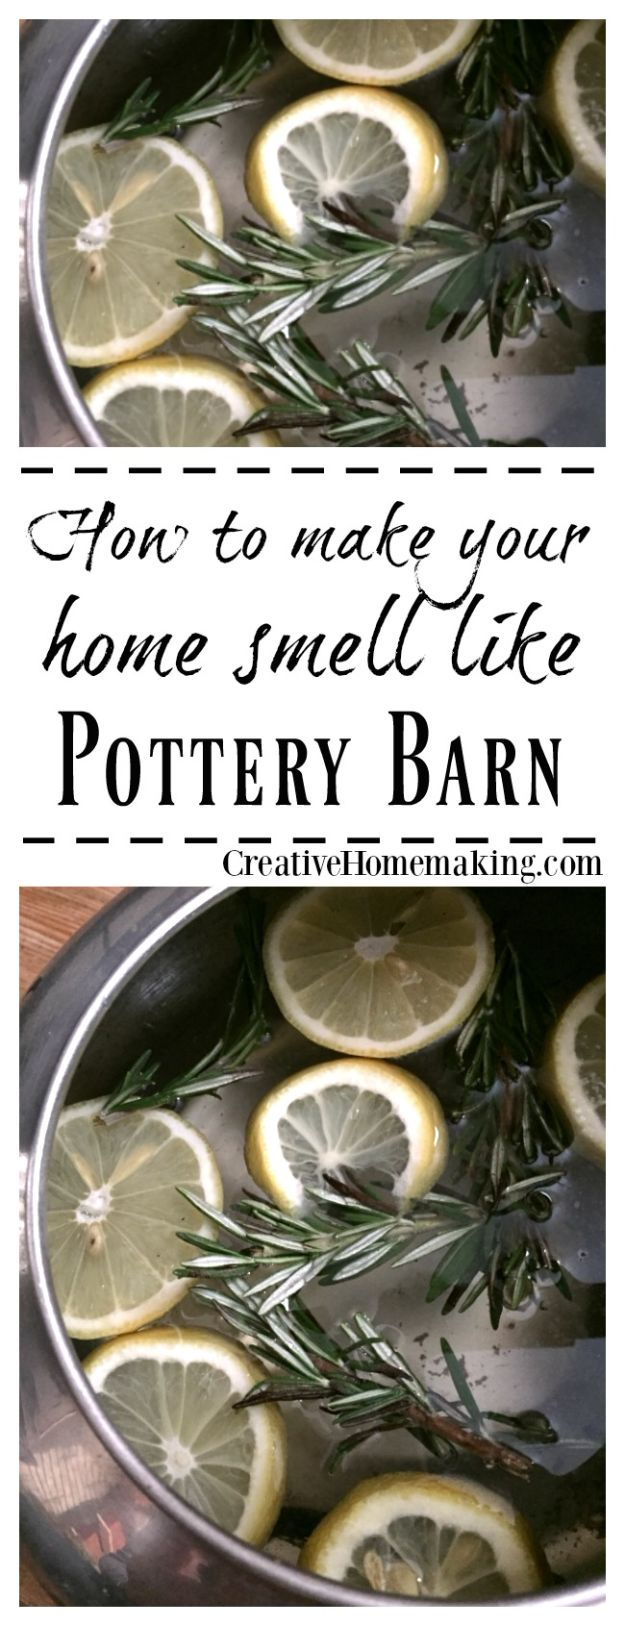 DIY Home Fragrance Ideas - Make Your House Smell Like Pottery Barn - Easy Ways To Make your House and Home Smell Good - Essential Oils, Diffusers, DIY Lampe Berger Oil, Candles, Room Scents and Homemade Recipes for Odor Removal - Relaxing Lavender, Fresh Clean Smells, Lemon, Herb